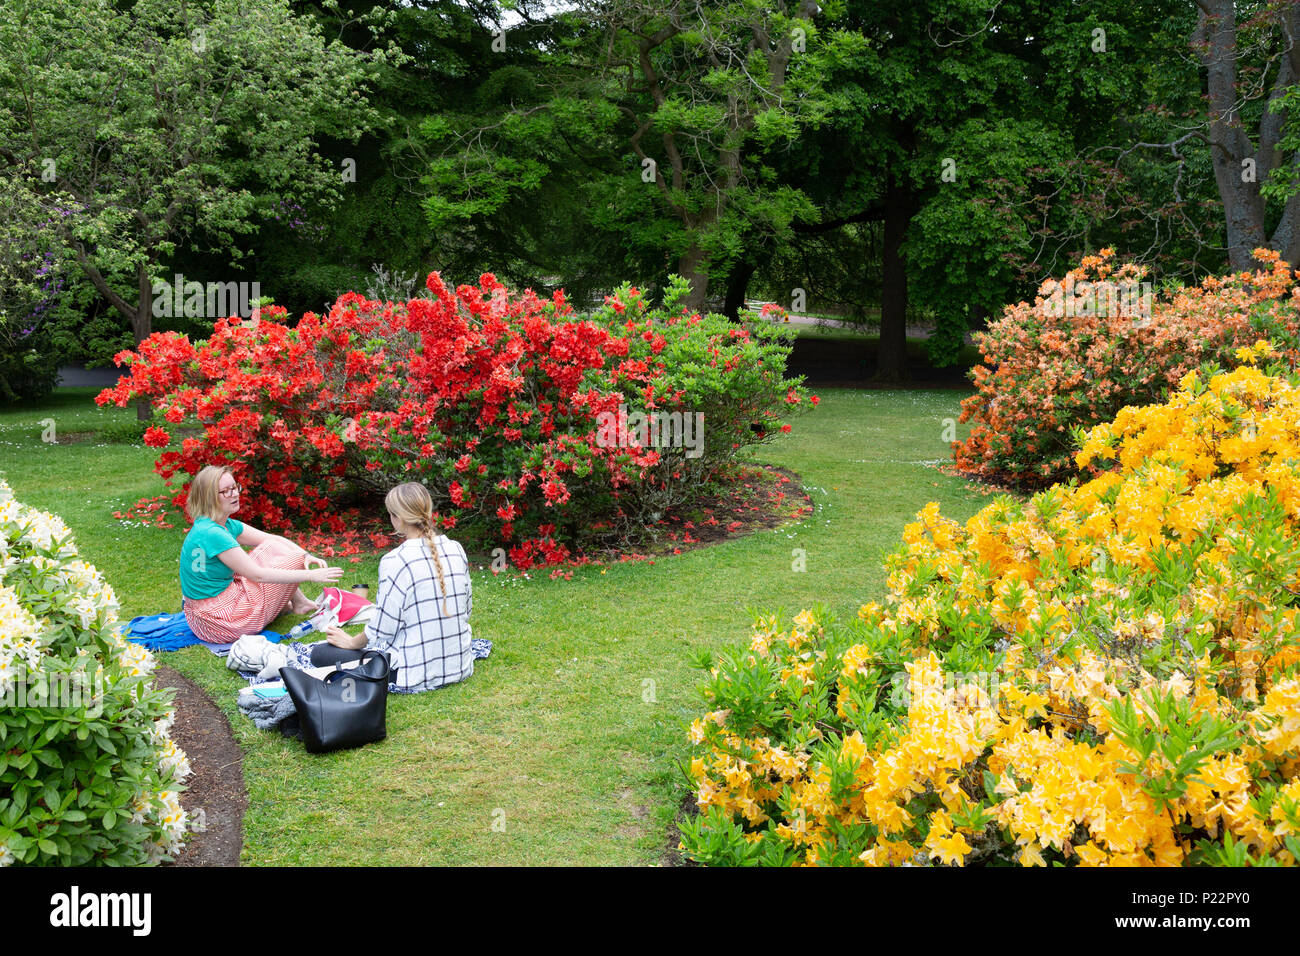 Visitors sitting in the Royal Botanic Garden, Edinburgh, Scotland UK - Stock Image